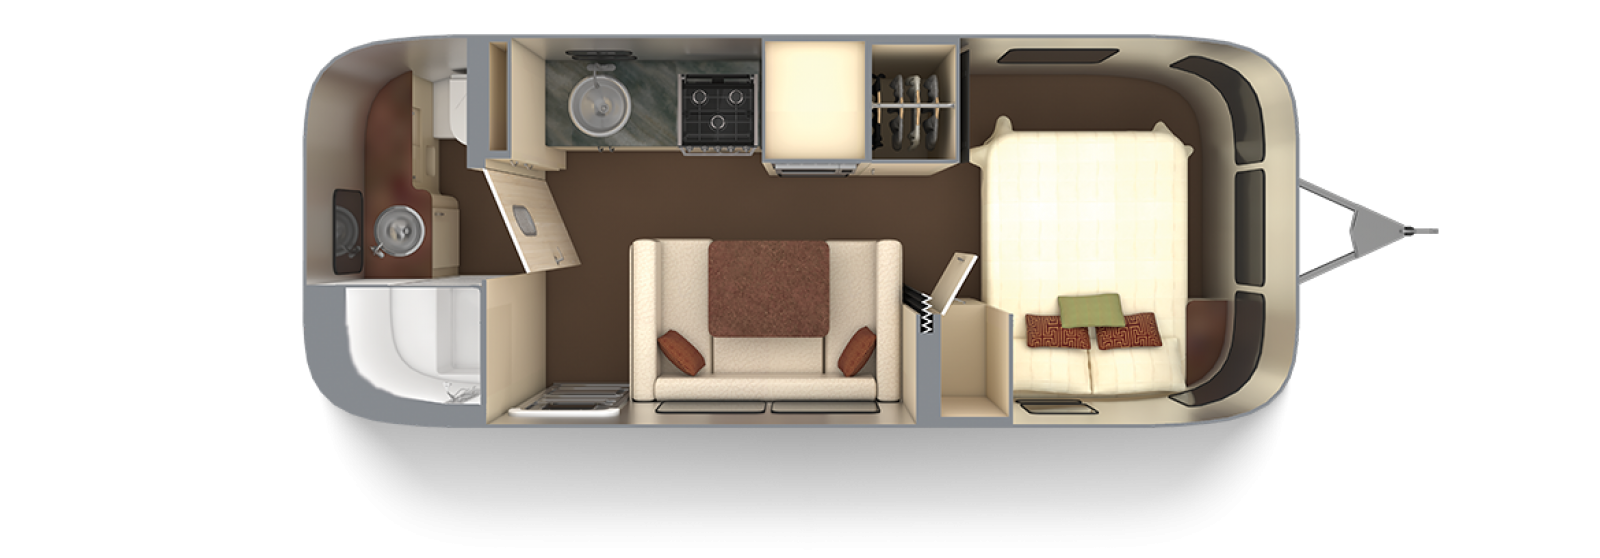 Serenity 23FB with Oyster Interior Decor